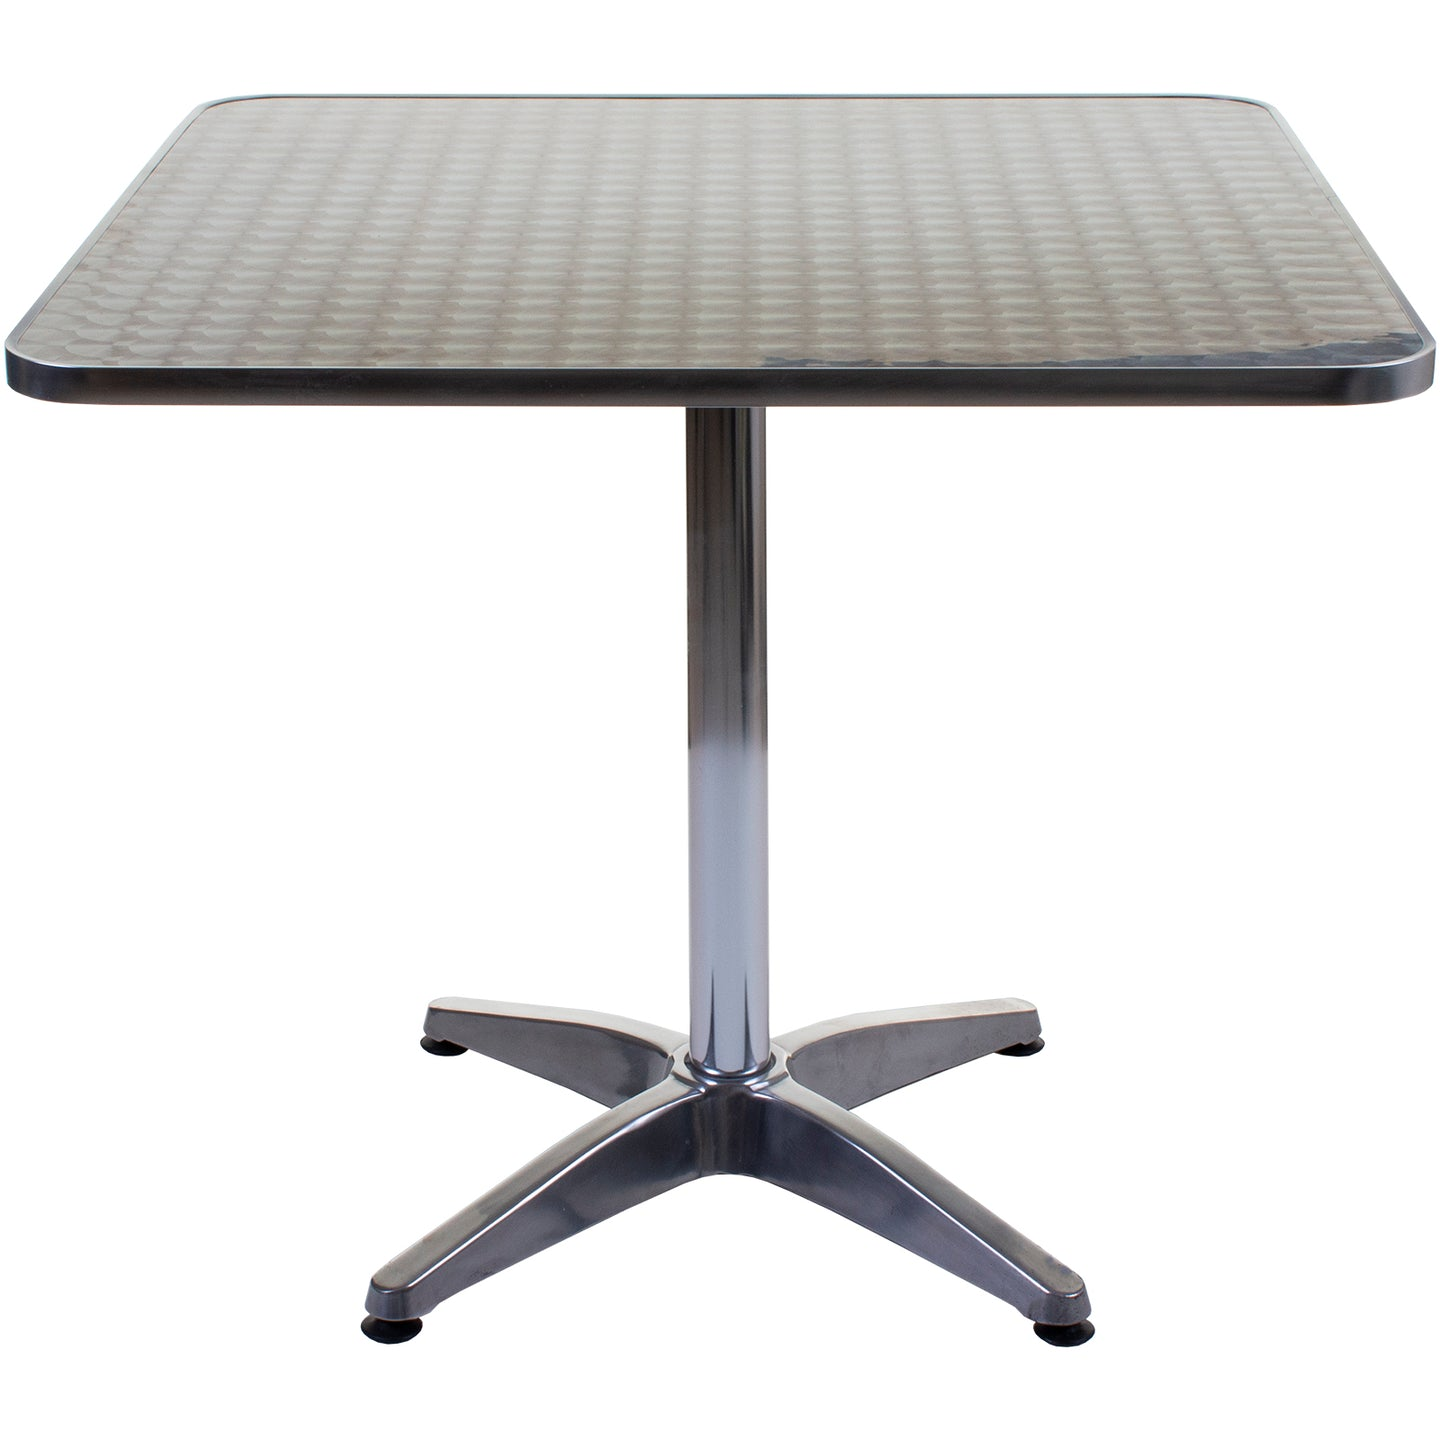 Fajardo Square Chrome Table